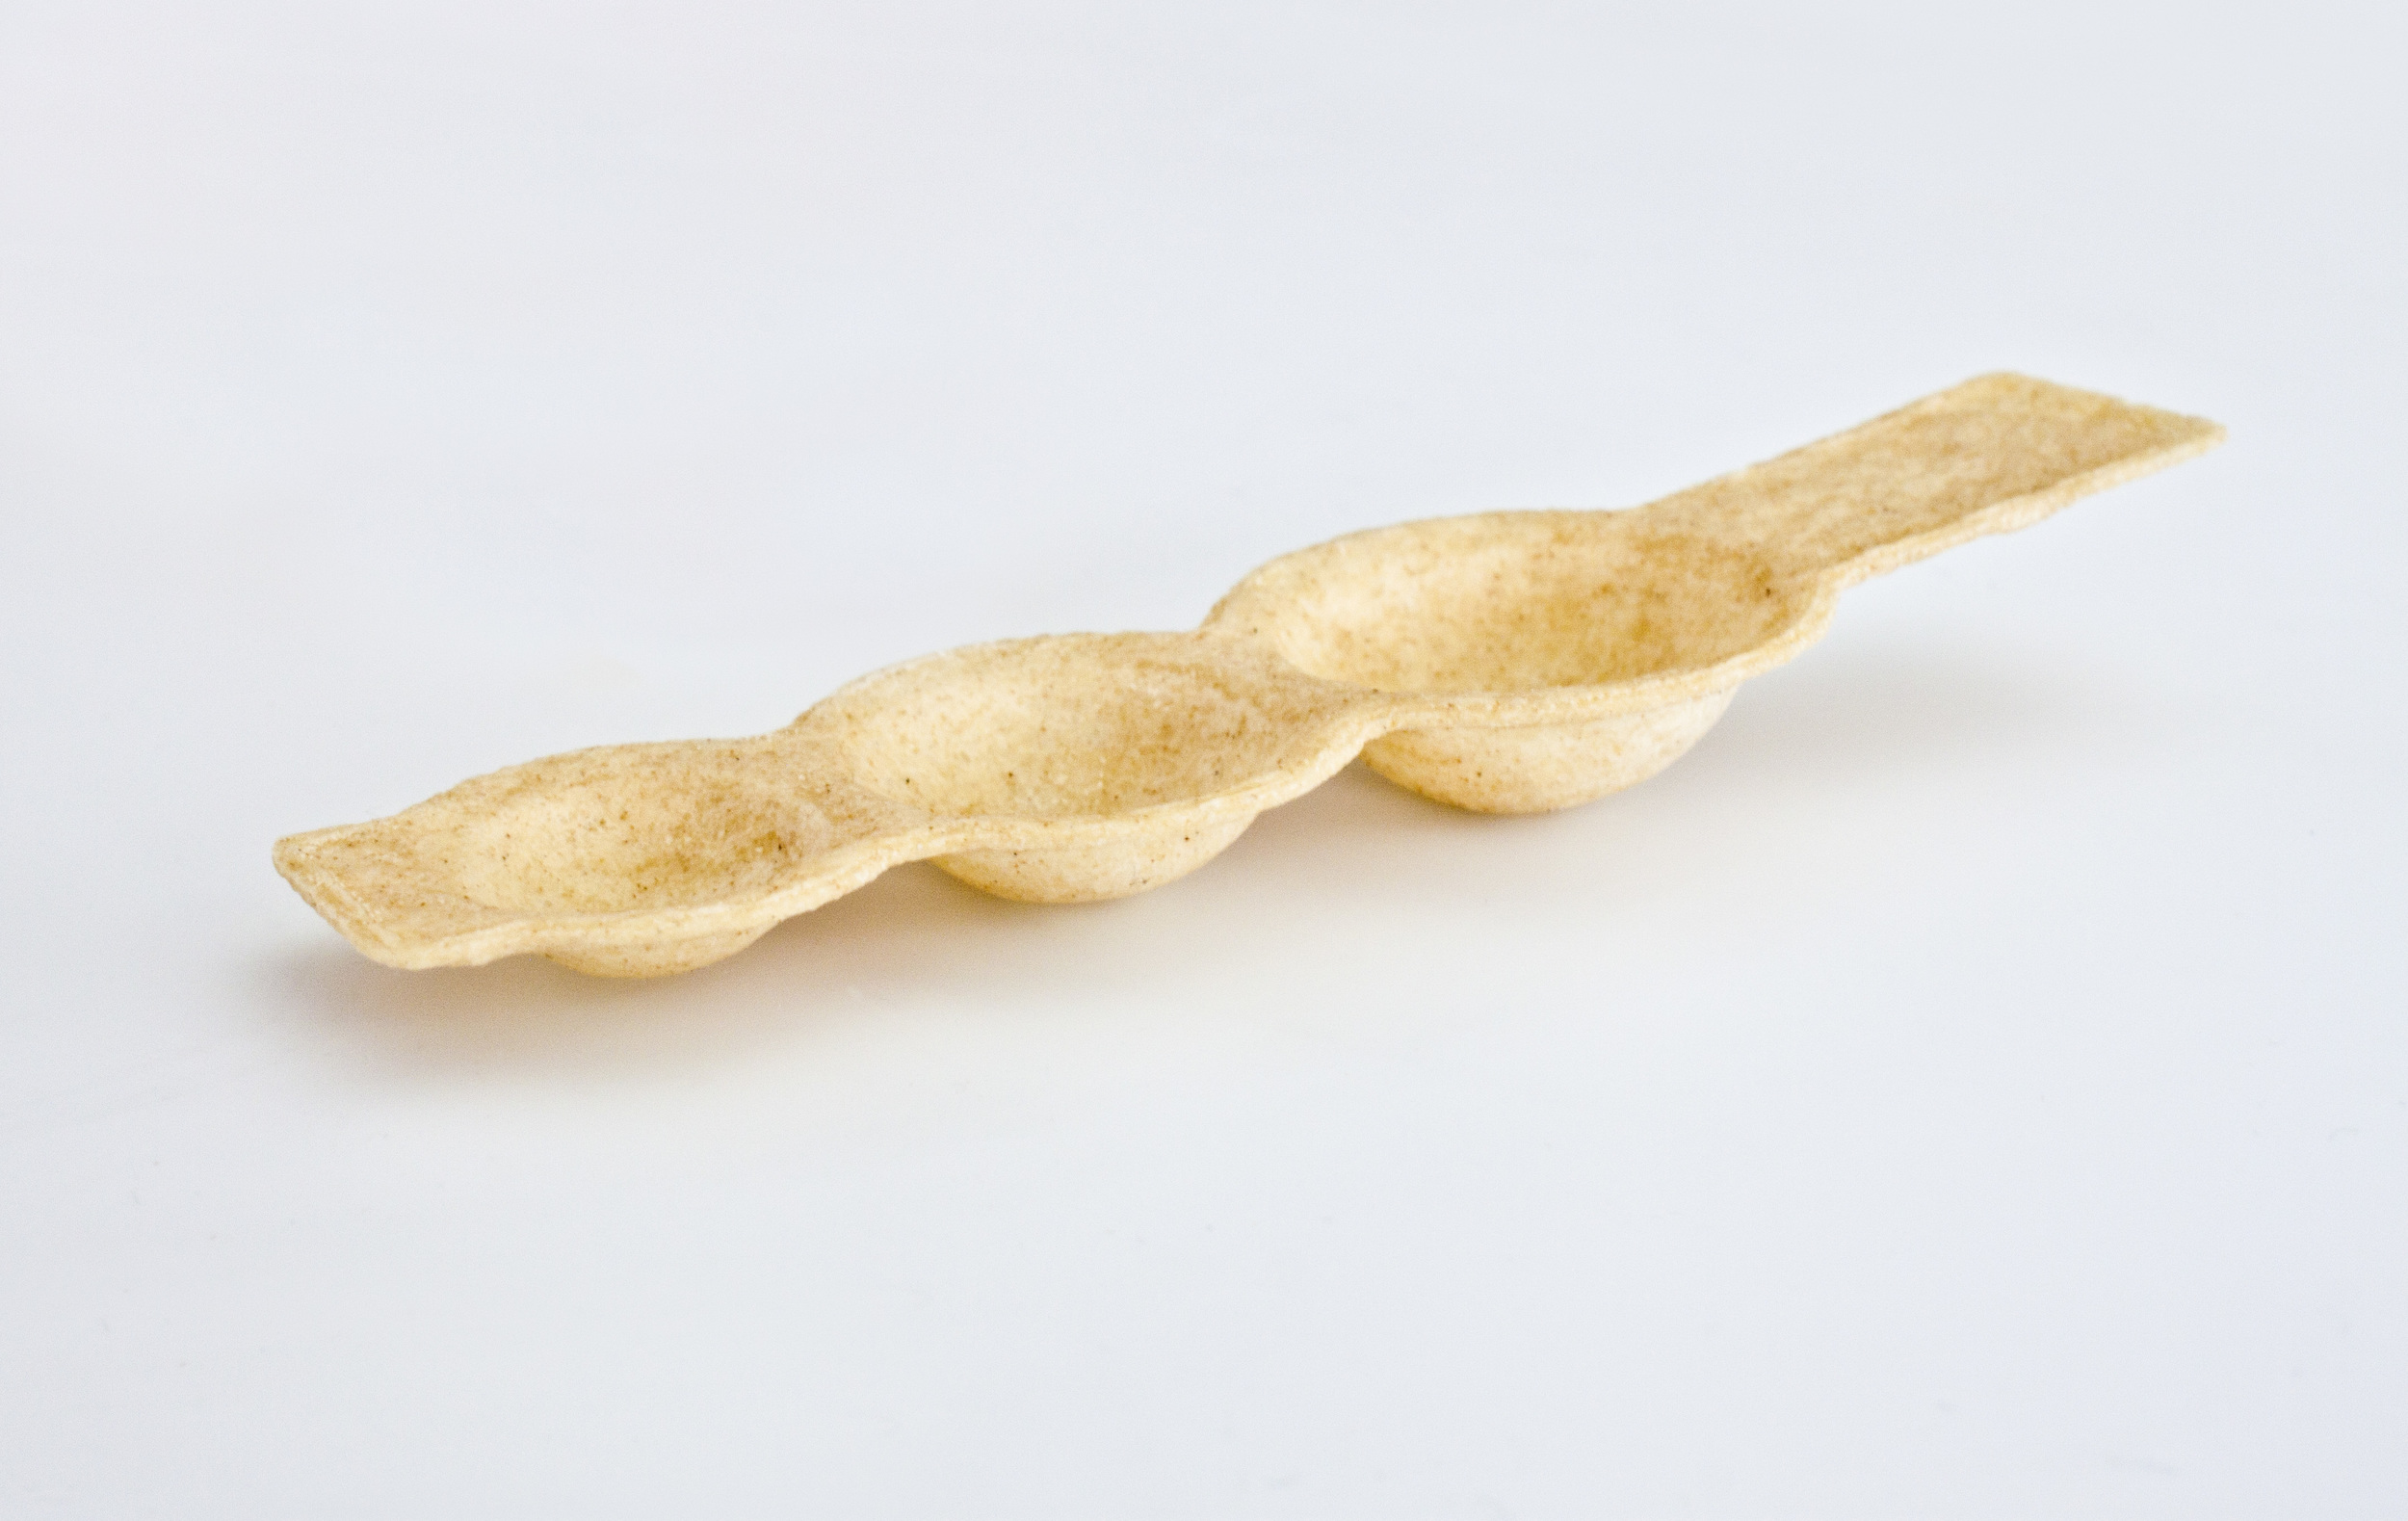 3-bite-spoon made of opnion